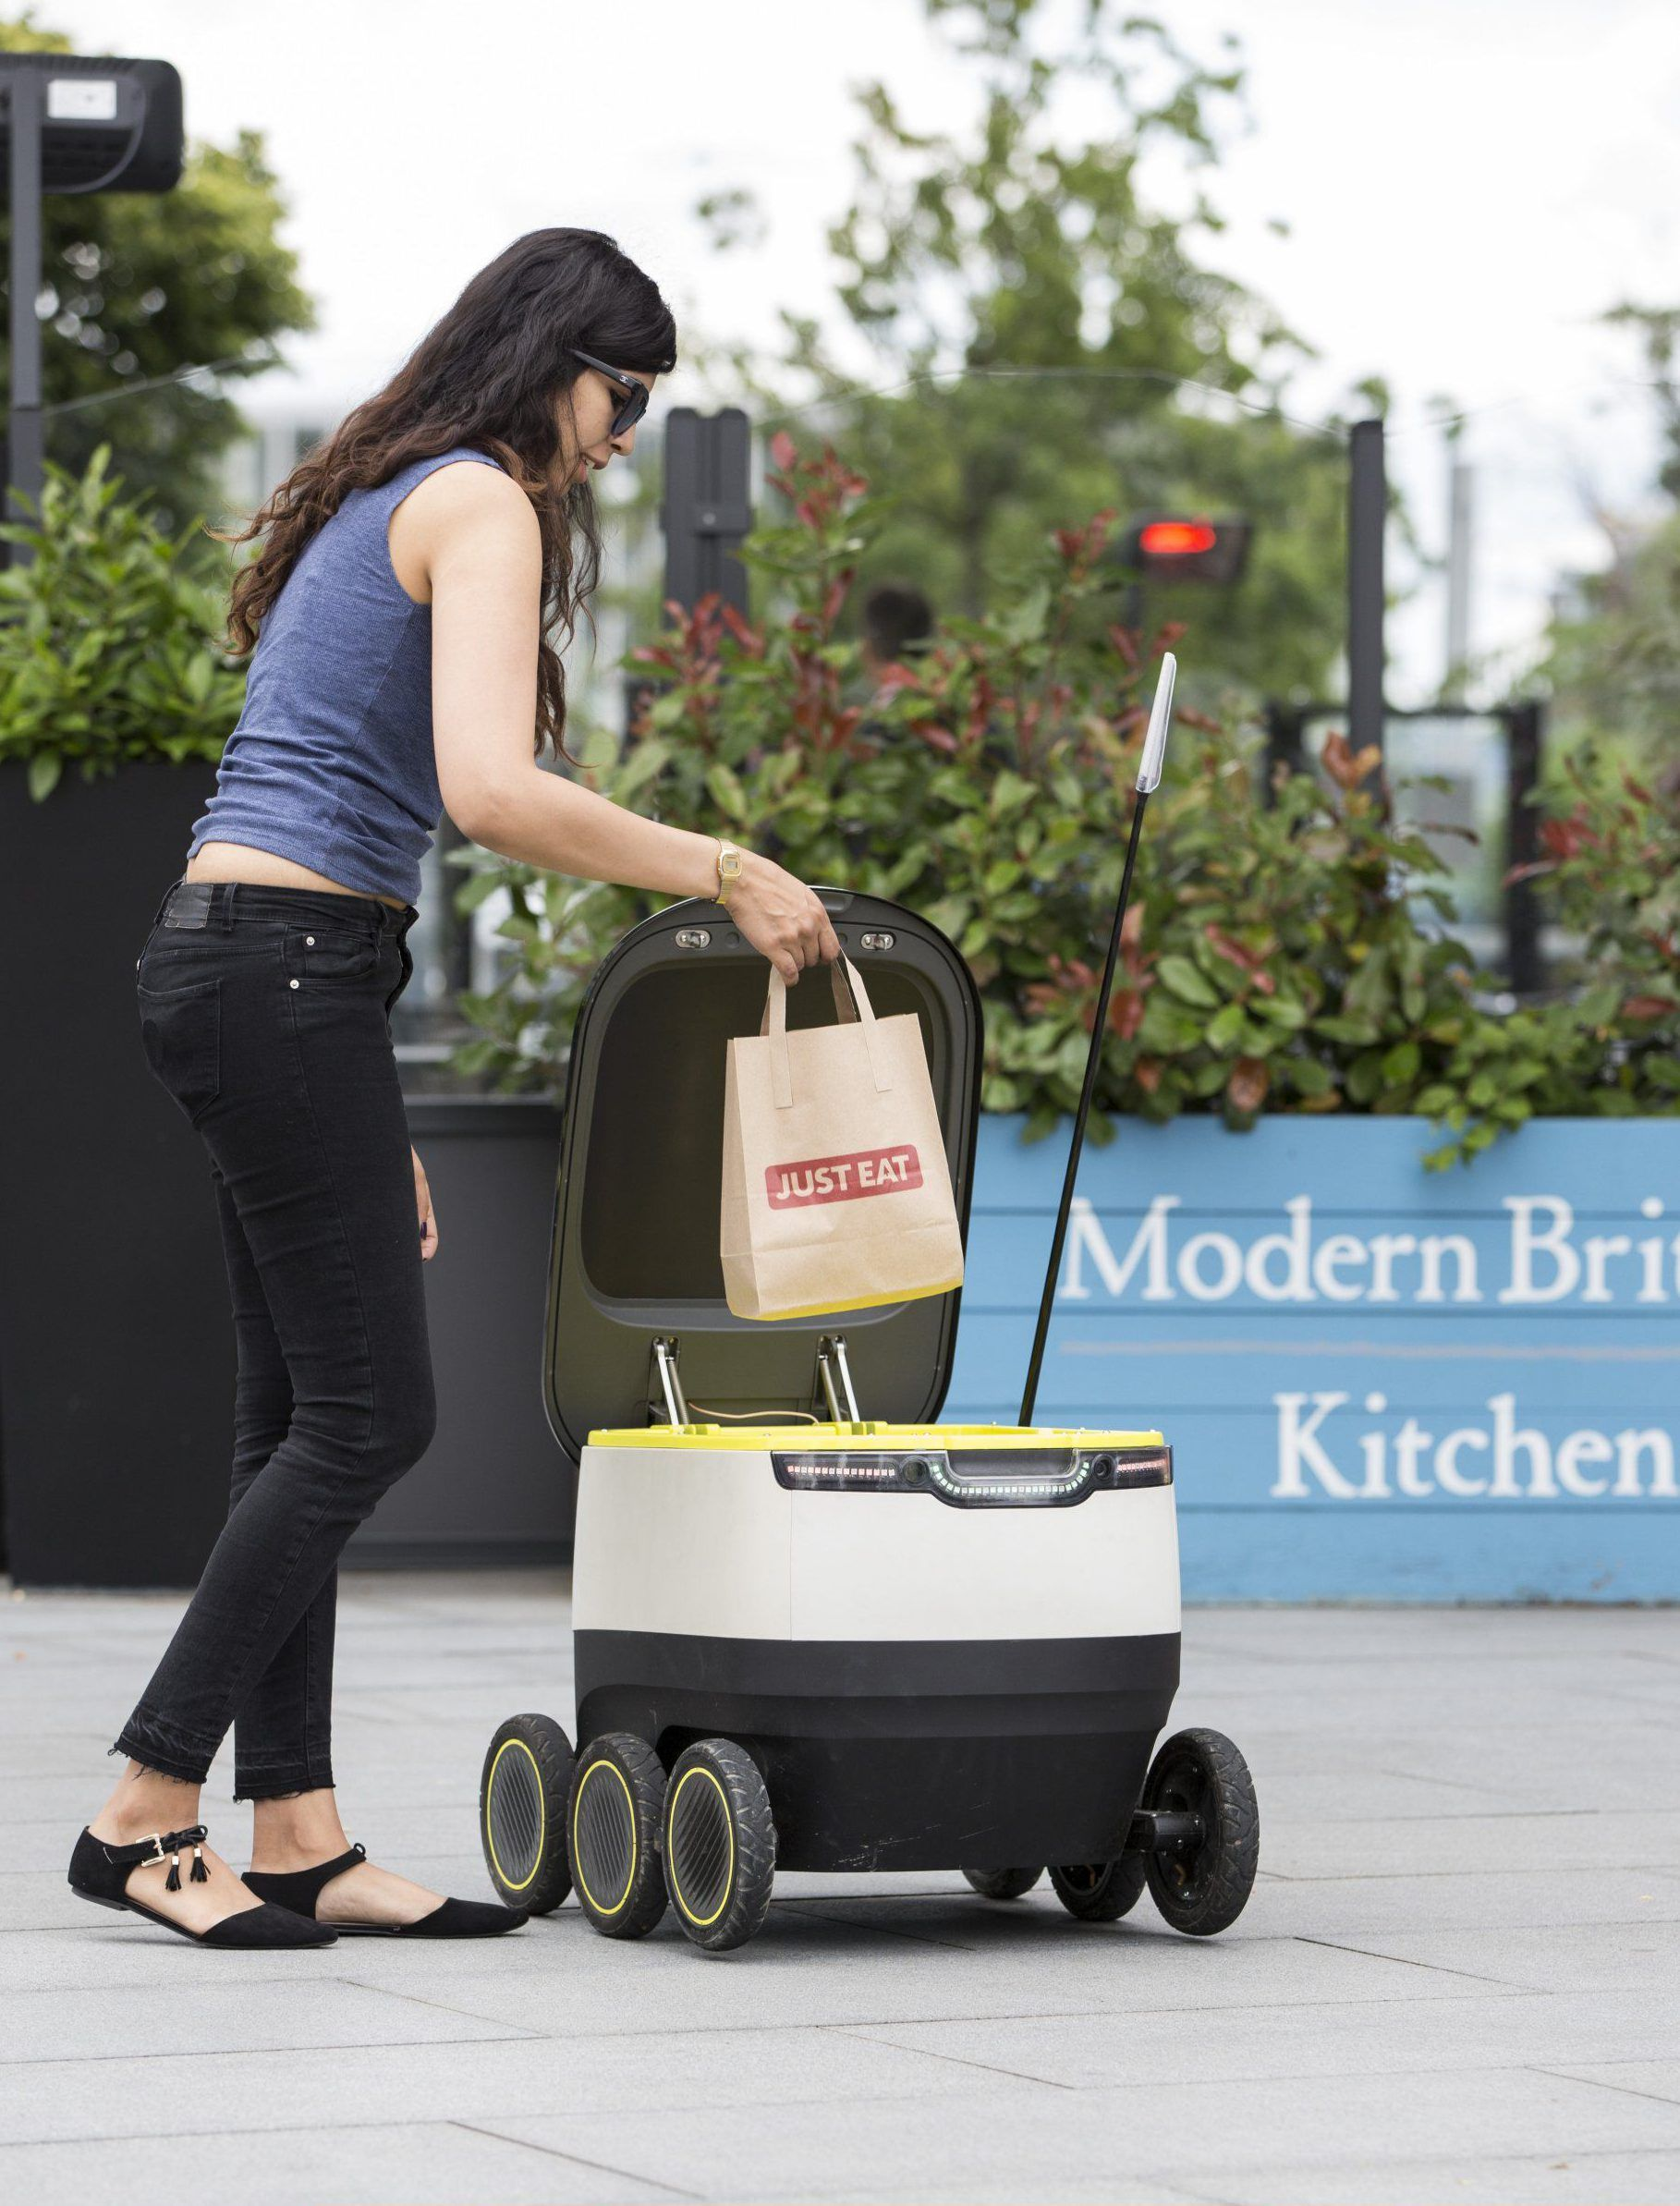 starship delivery robot london